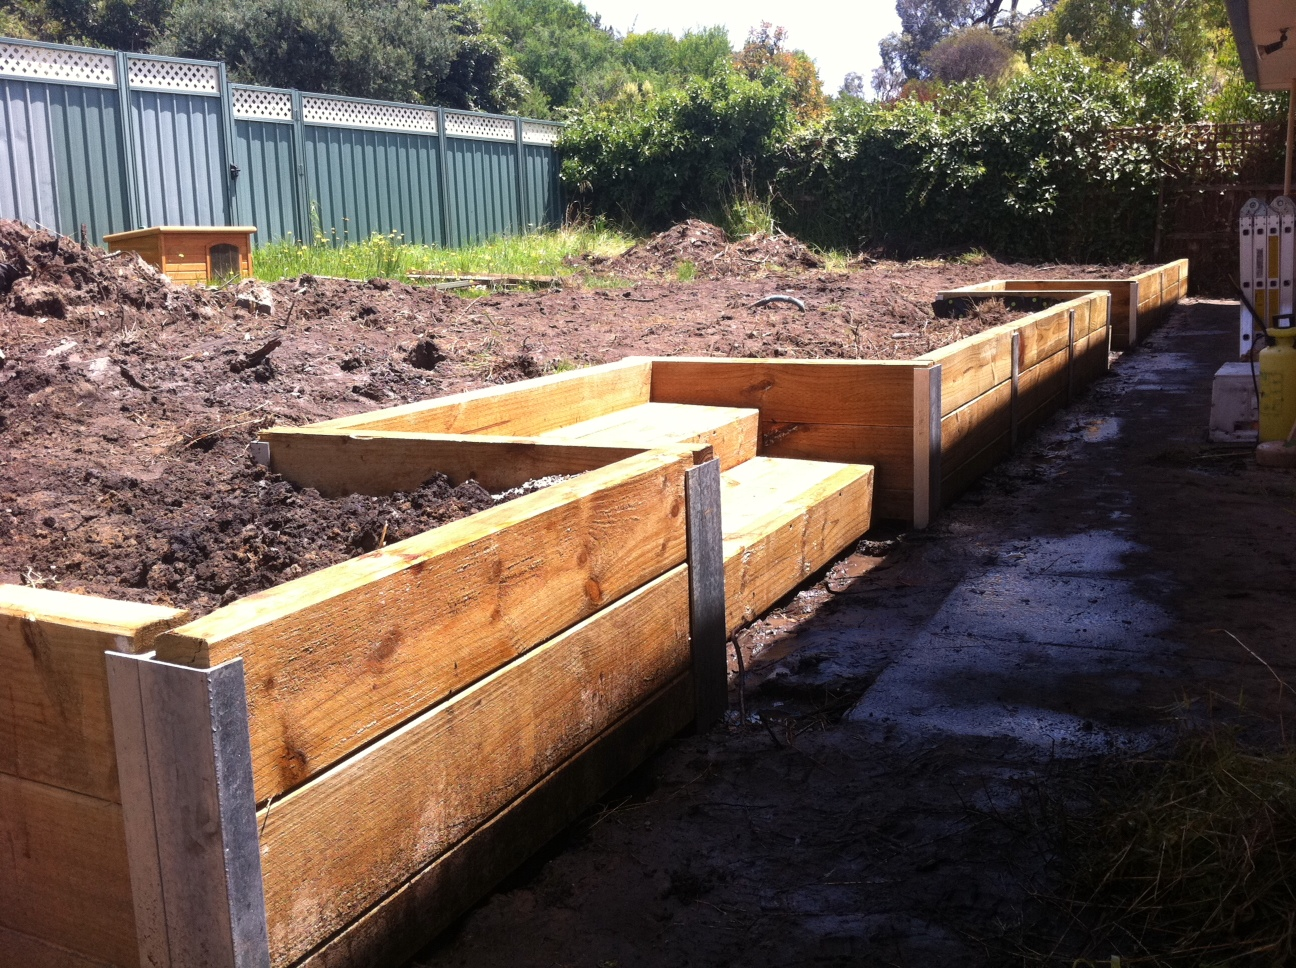 Wall Construction Materials : Retaining wall building materials i which should choose